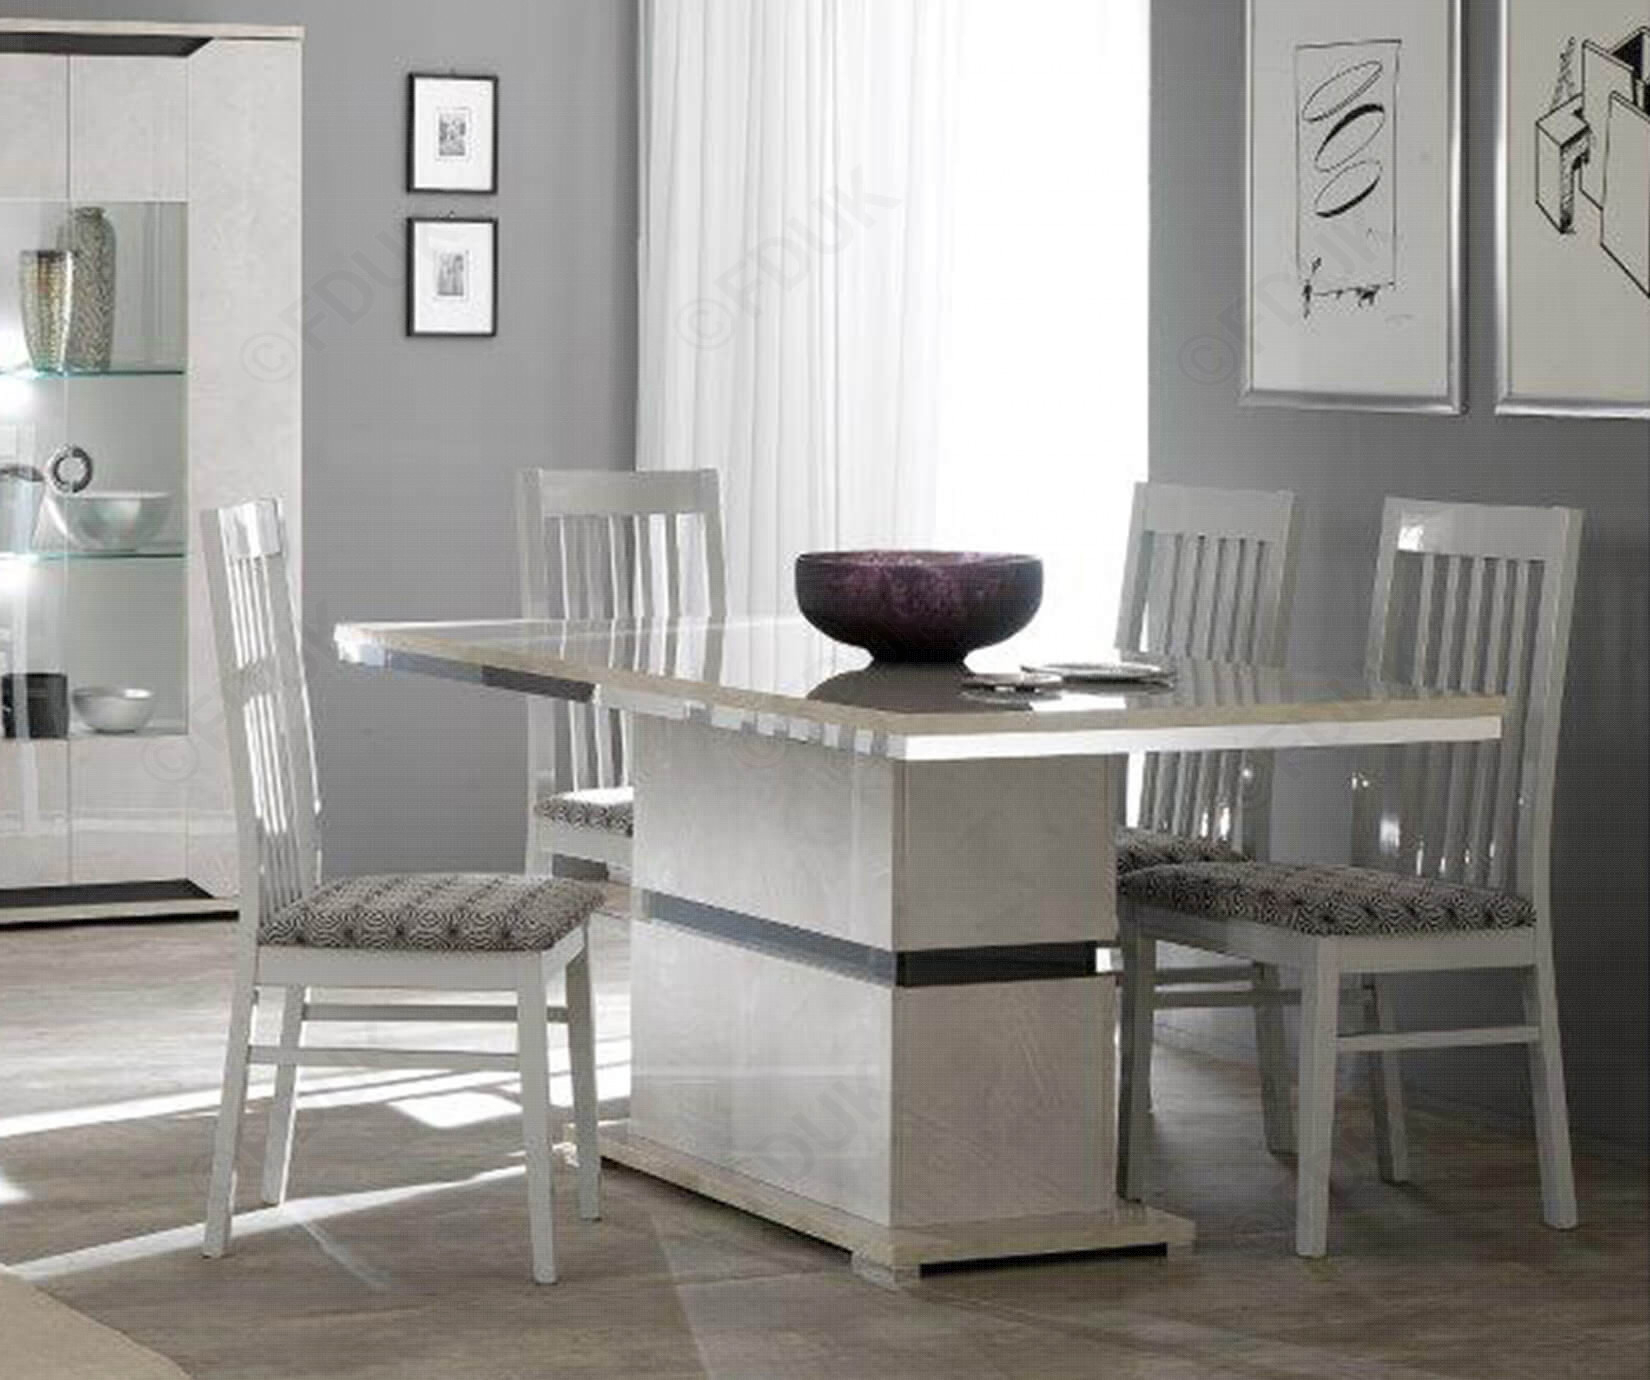 San Martino Mistral Rectangular Dining Table With 4 Wooden Dining Chairs Within Newest Martino Dining Tables (View 3 of 25)